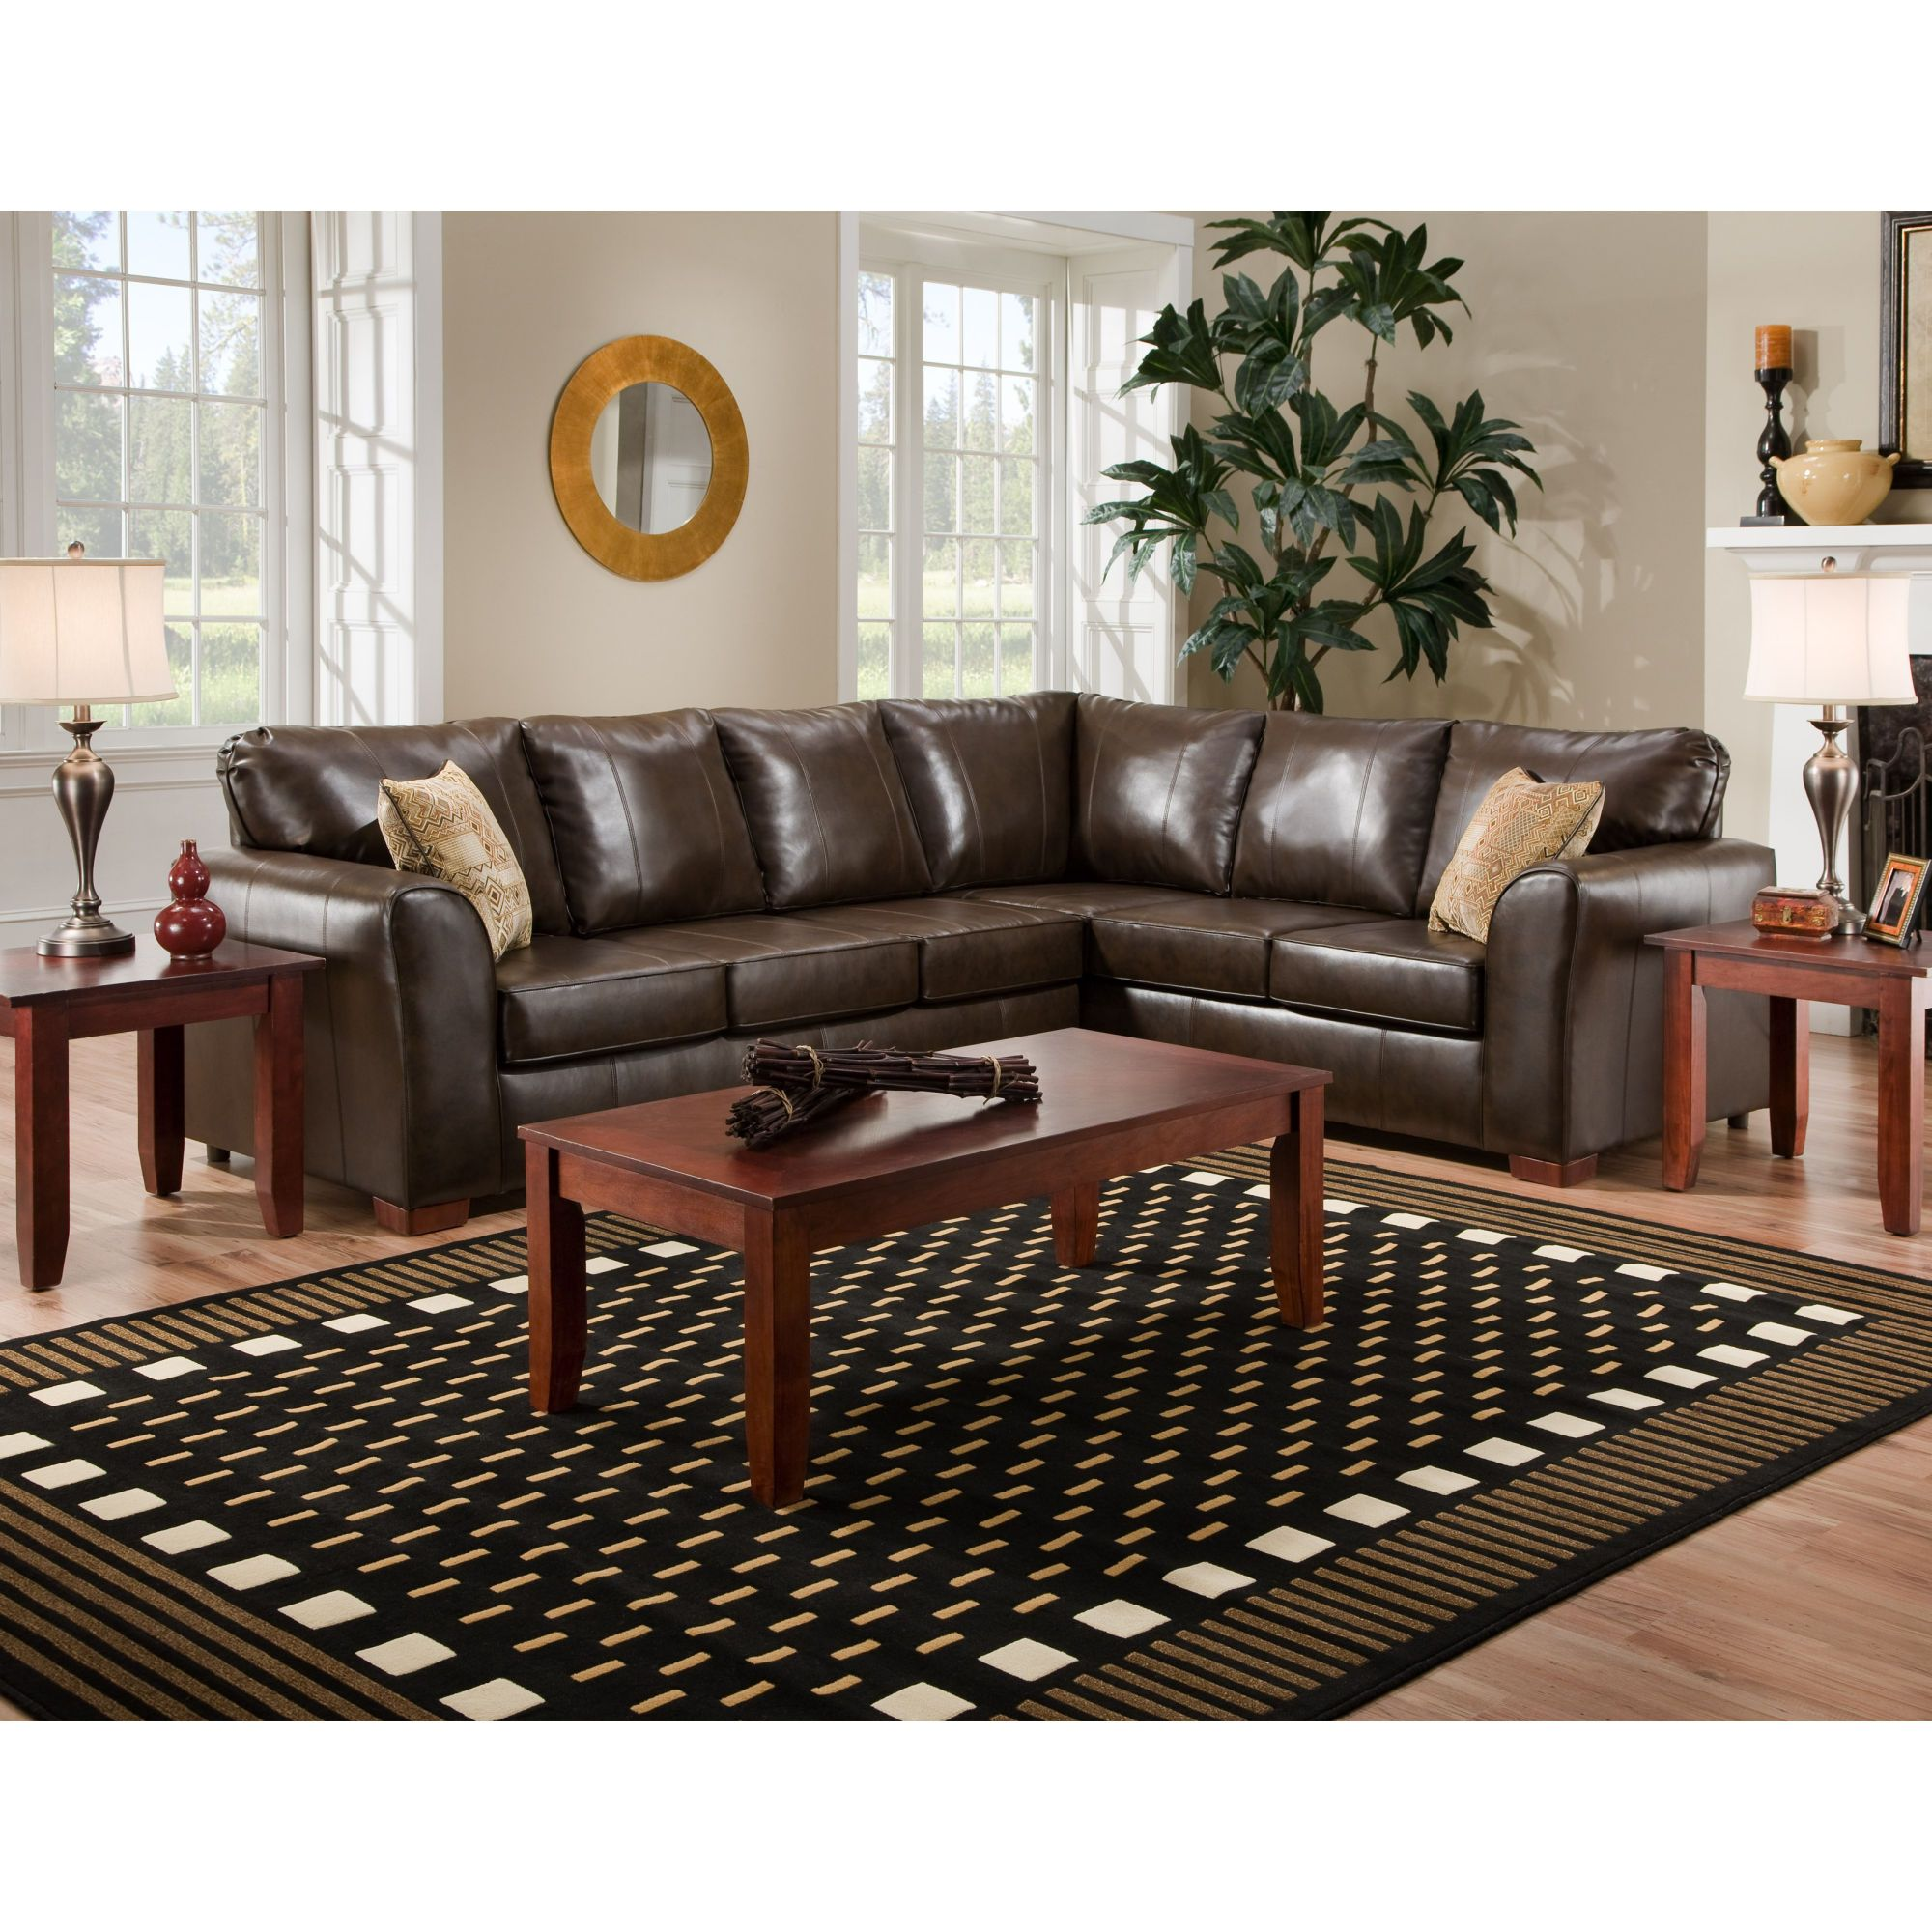 Best American Furniture Bentley Bonded Leather Sectional Sofa 400 x 300